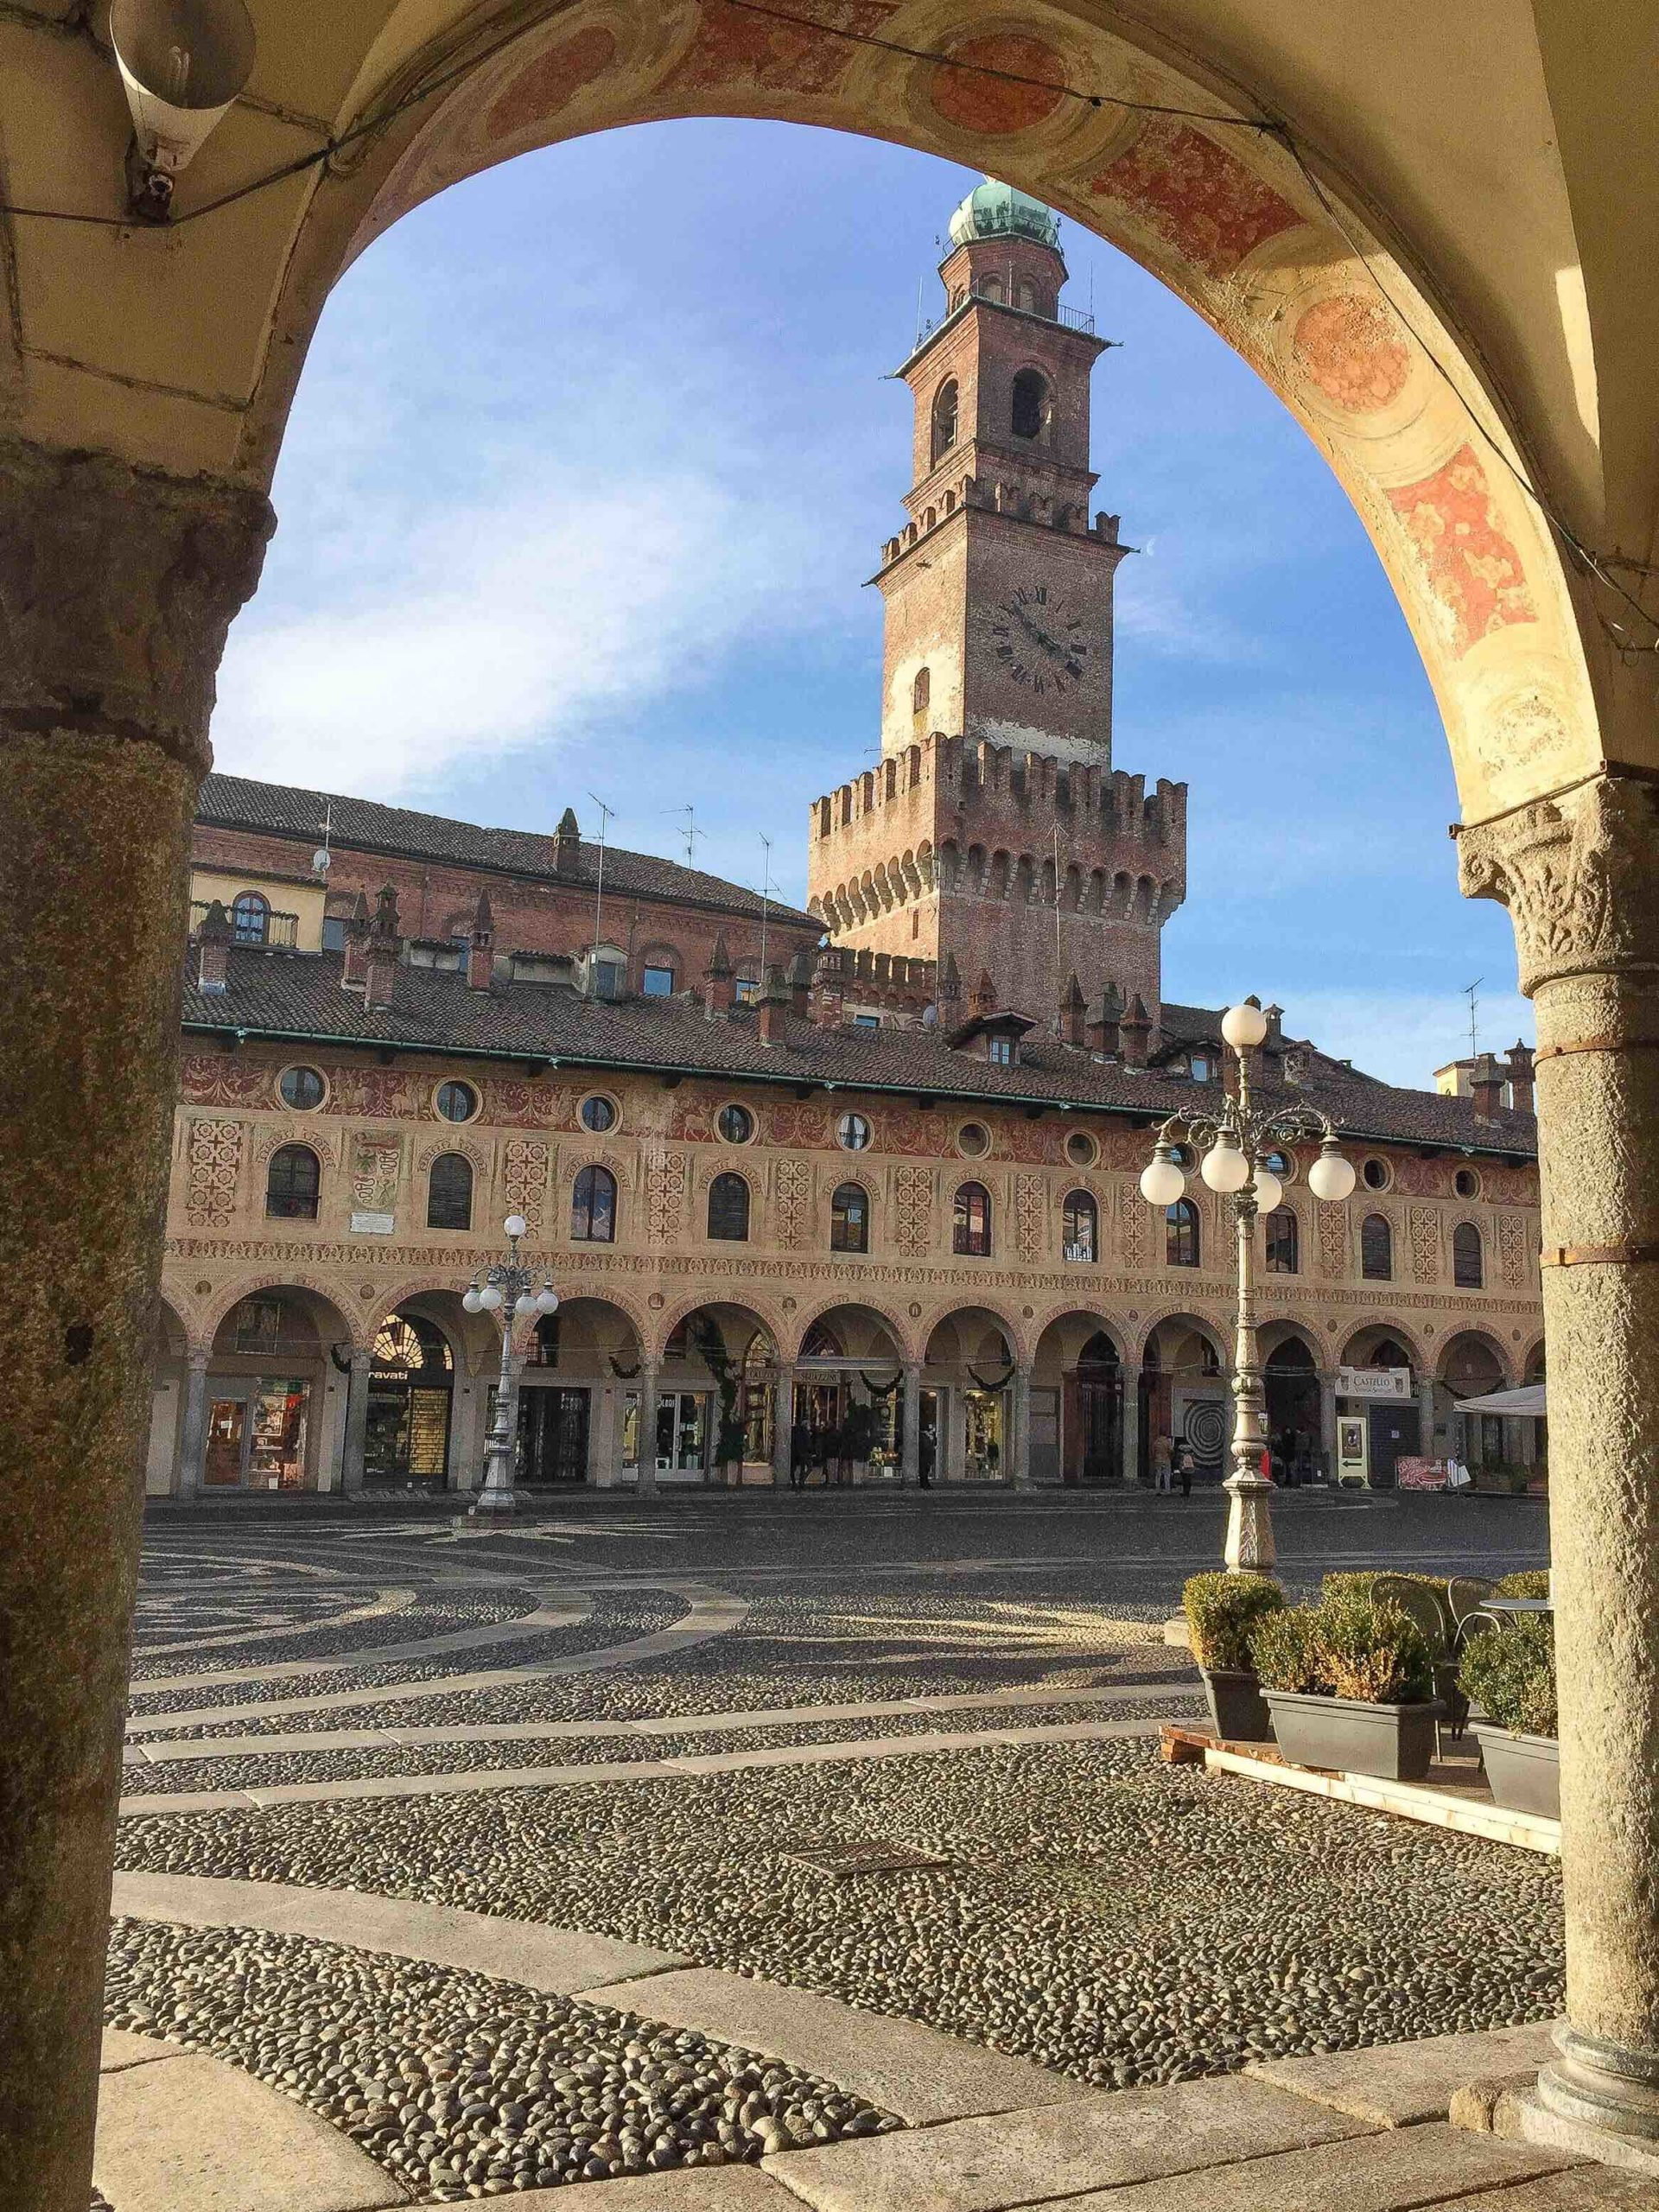 View of the splendid Piazza Ducale in Vigevano